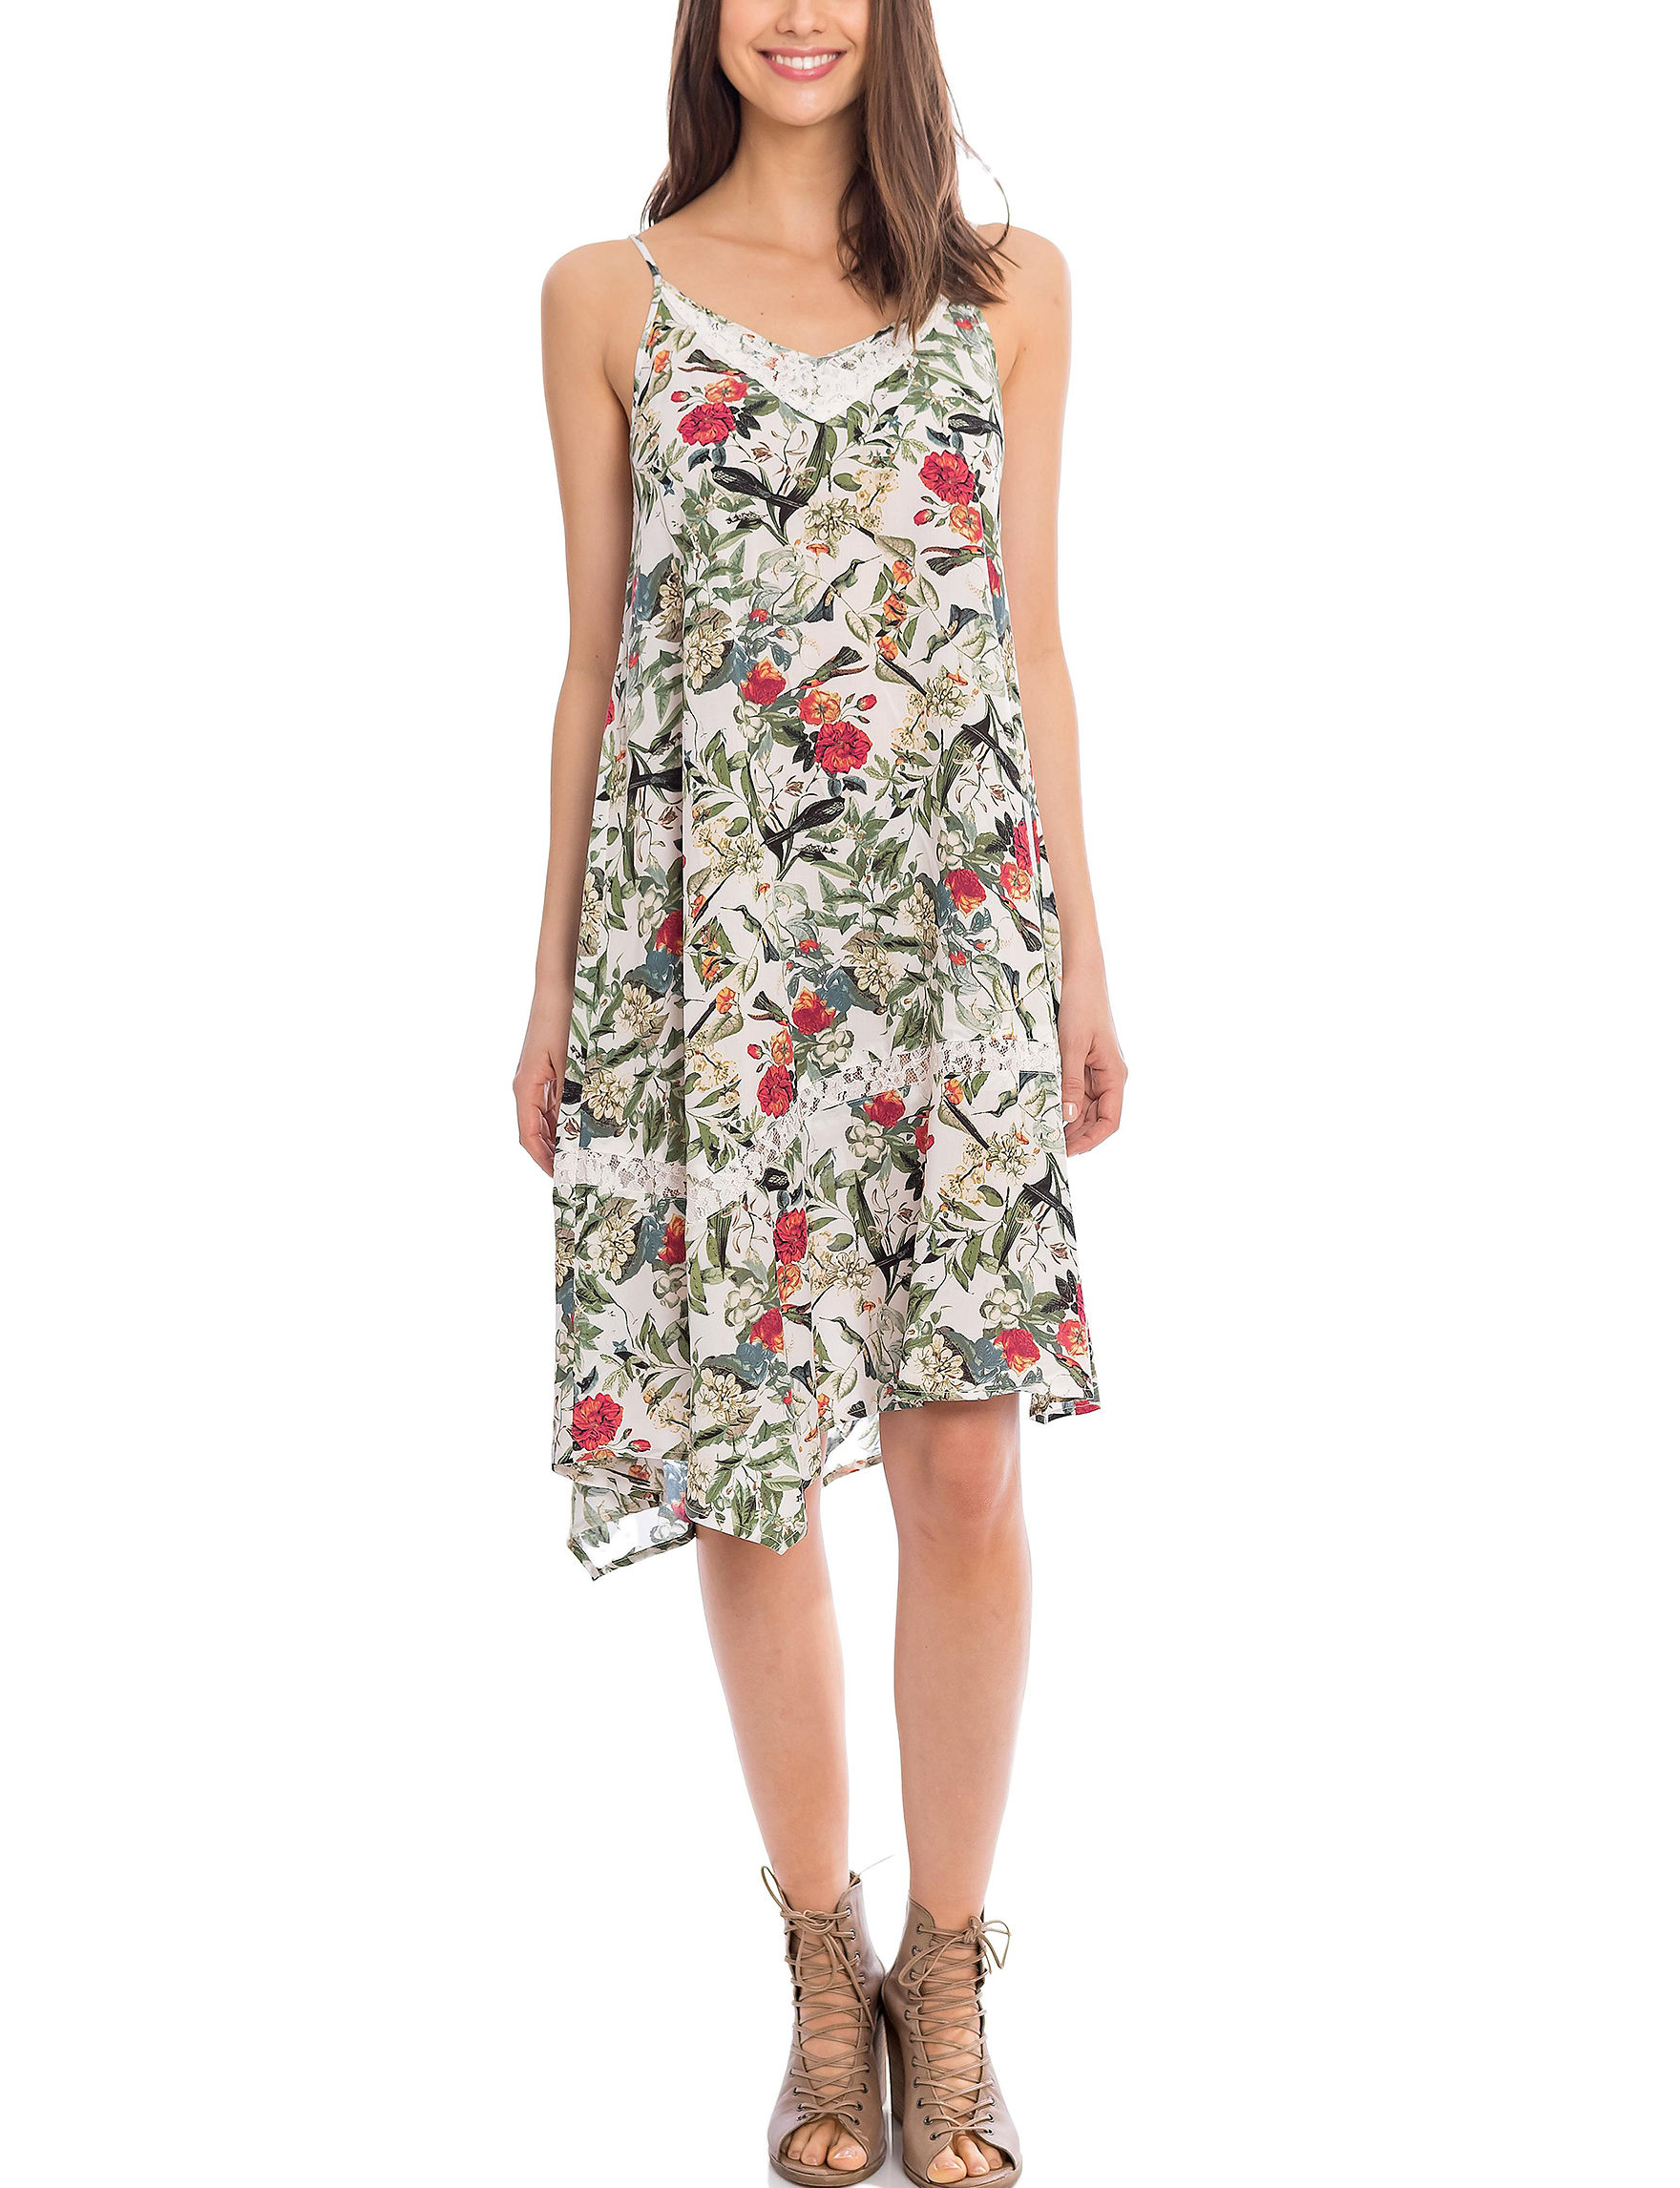 Skyes The Limit White Multi Everyday & Casual Shift Dresses